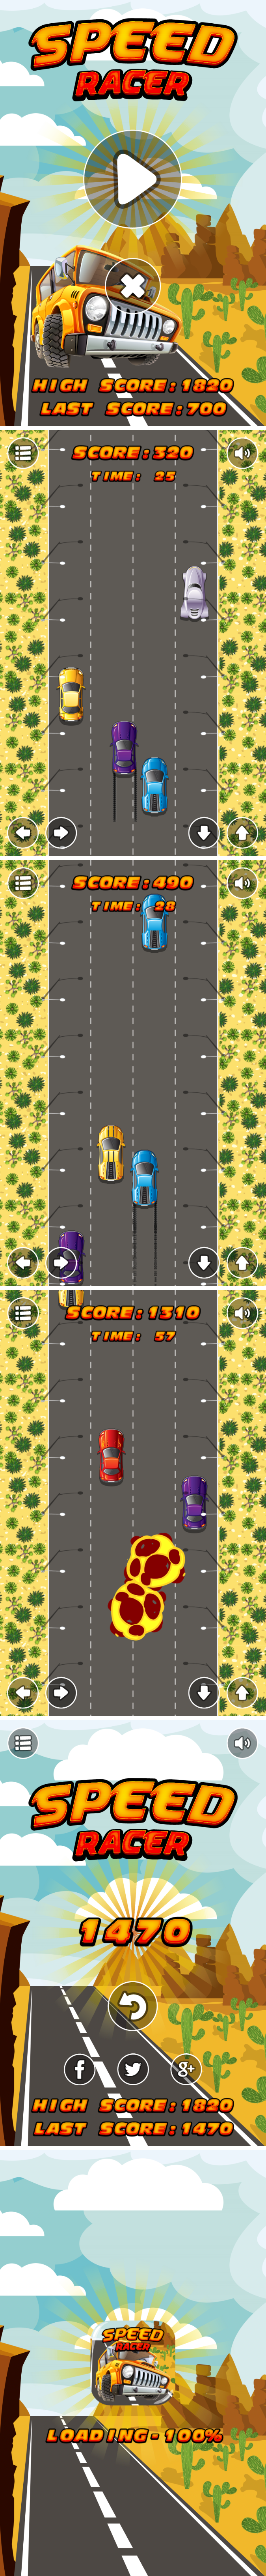 Speed Racer - HTML5 Game + Android + AdMob (Construct 3 | Construct 2 | Capx) - 3